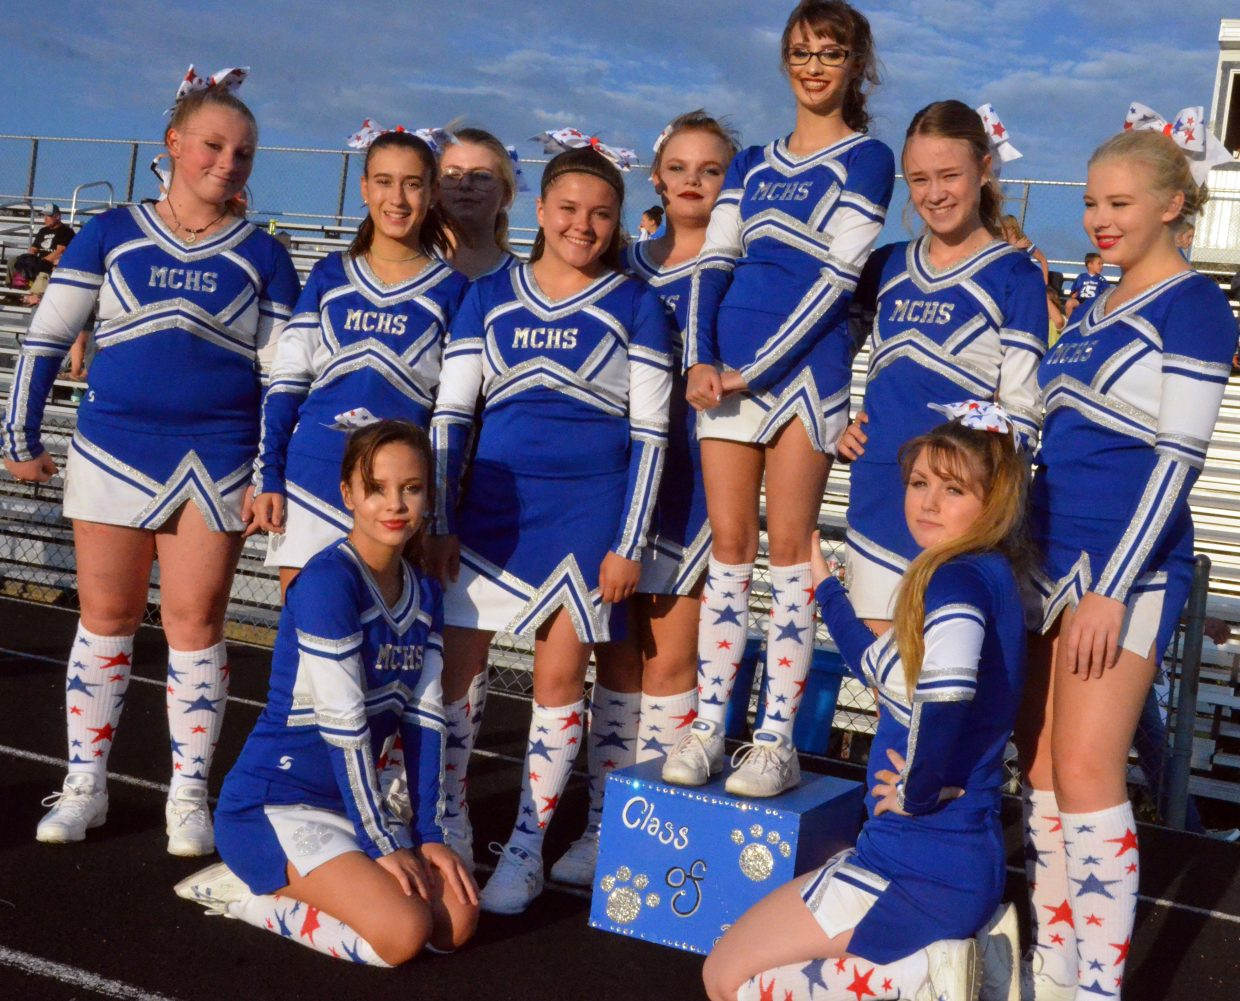 The Moffat County High School cheer team displays their patriotic footwear before Friday's football game.